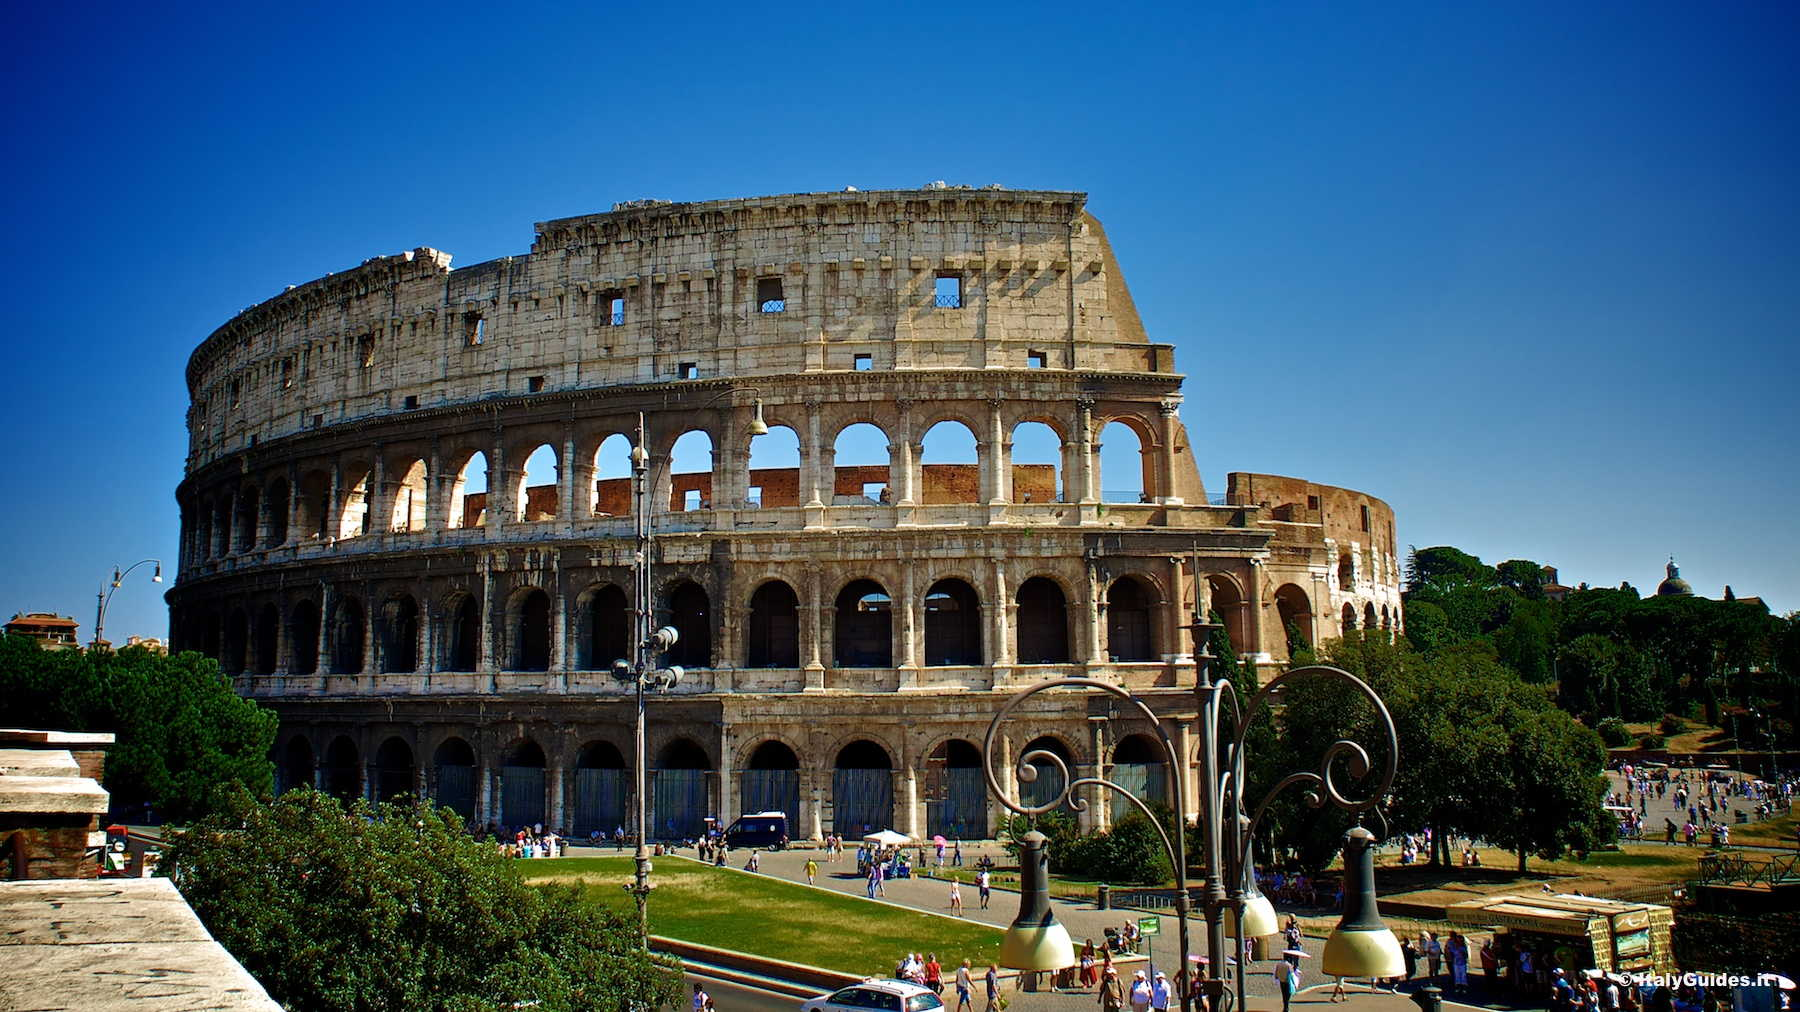 Pictures of Roman Colosseum, photo gallery and movies of ...